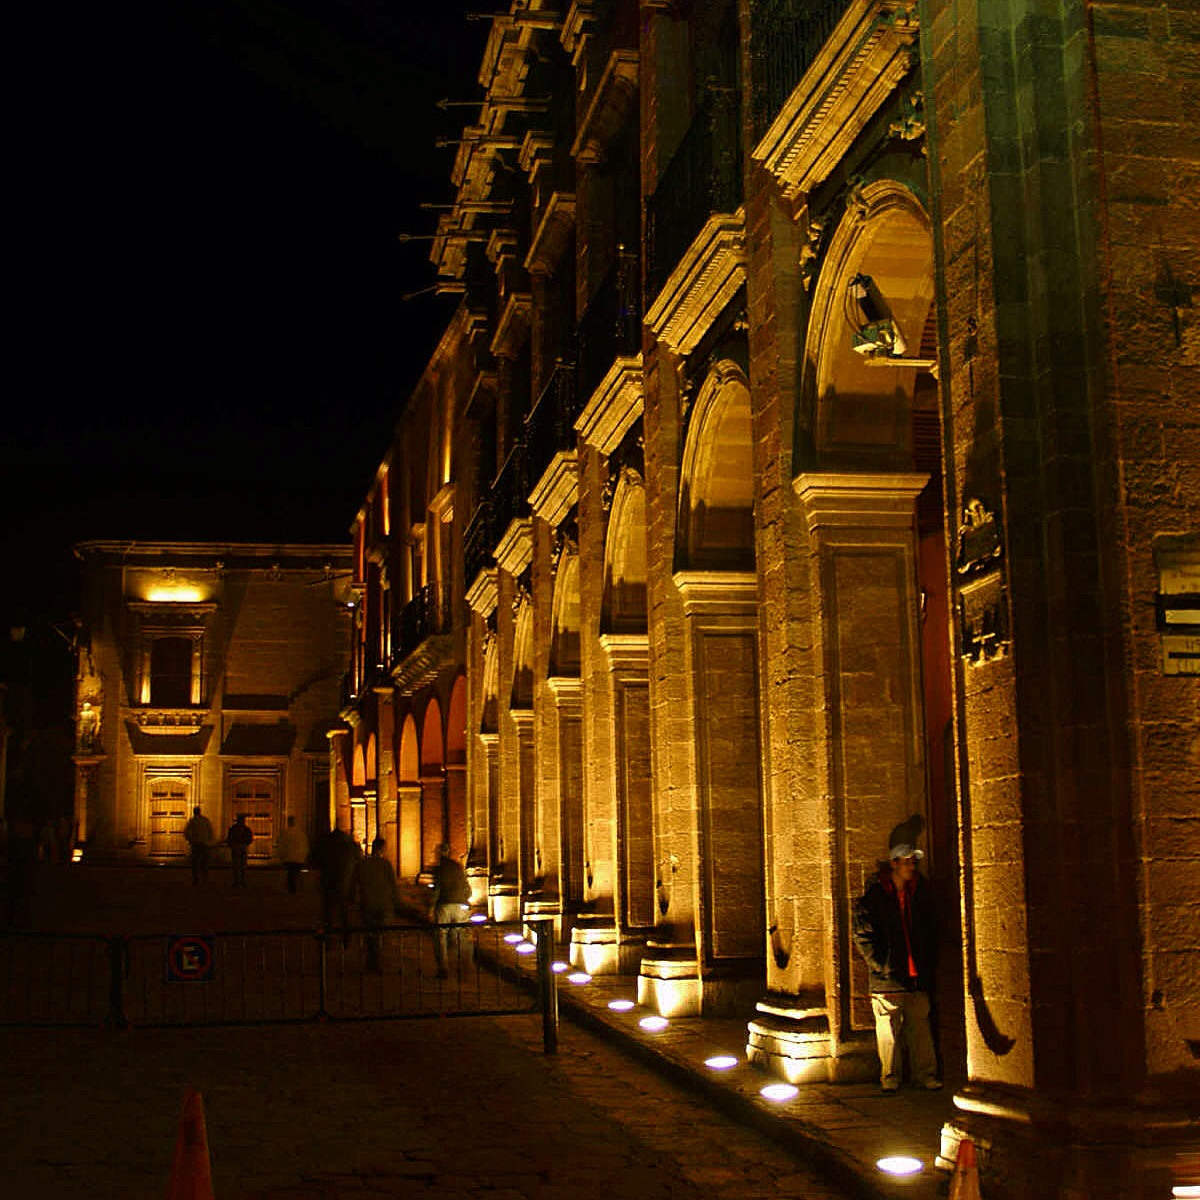 The portales in the main plaza of San Miguel lit up at night.